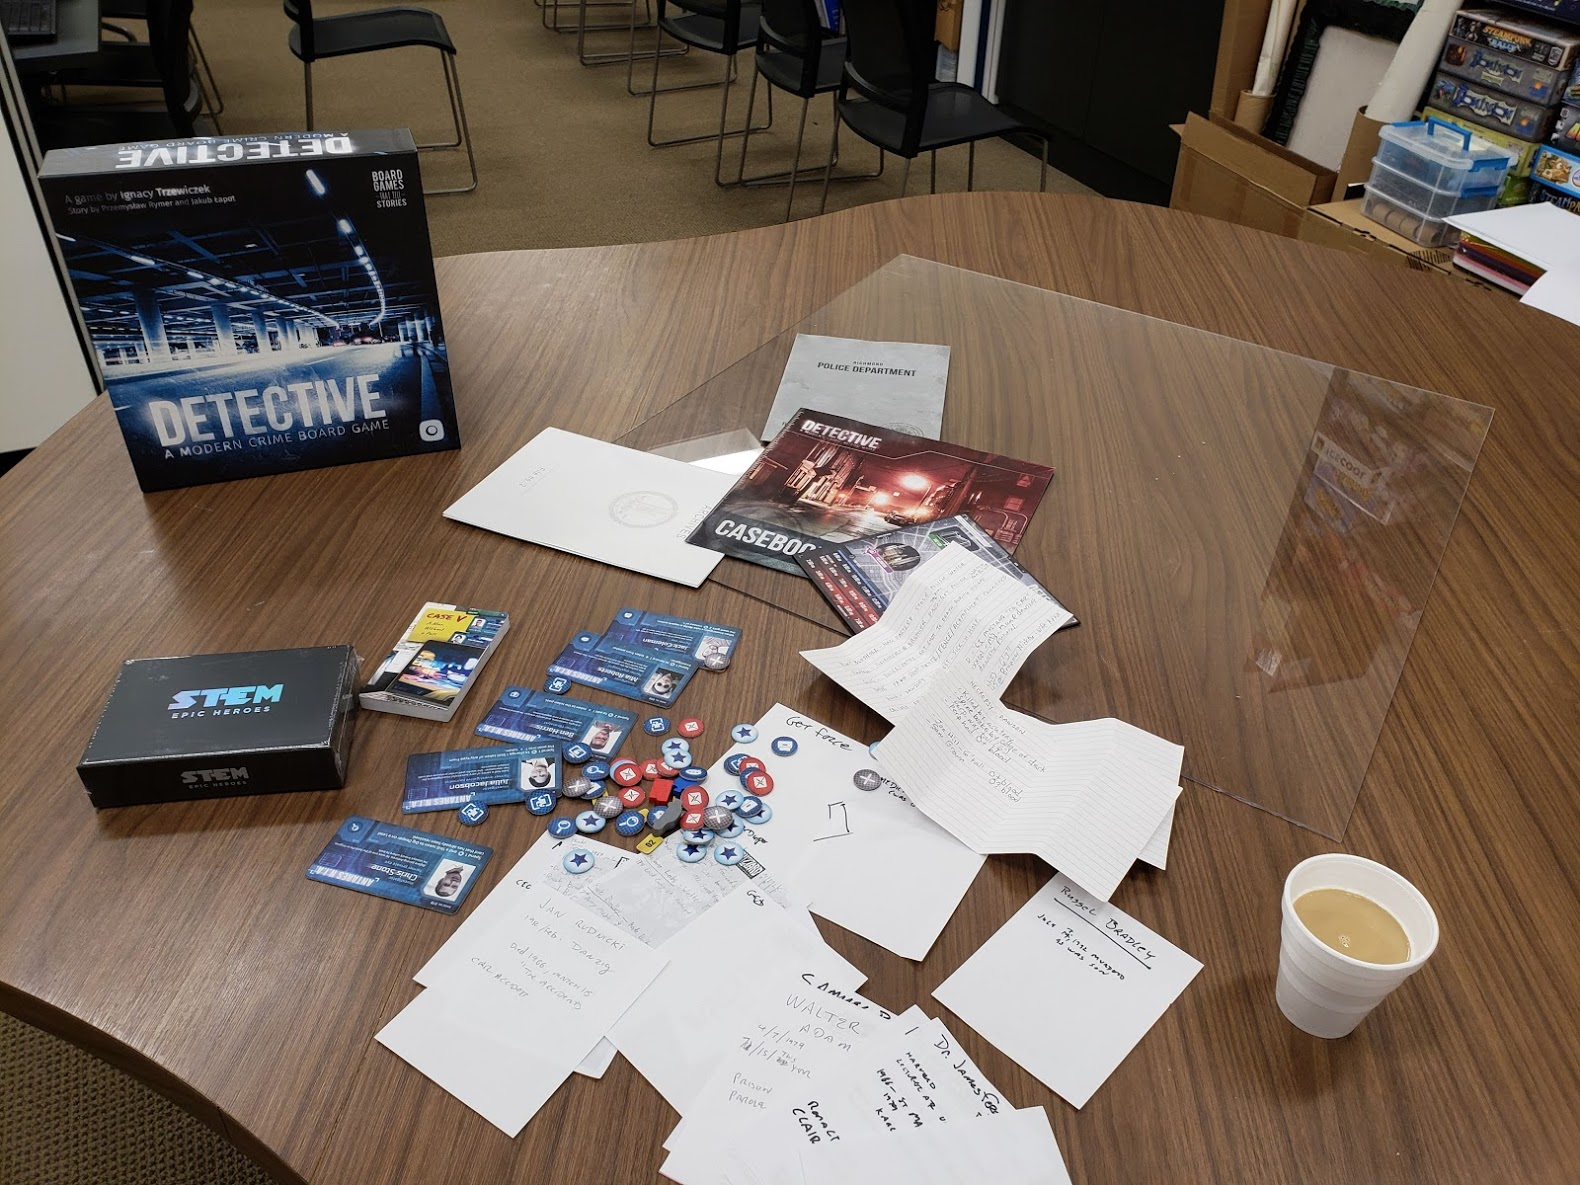 The Detective game, with obligatory cup of coffee. And another bonus game that slipped in when nobody was looking.